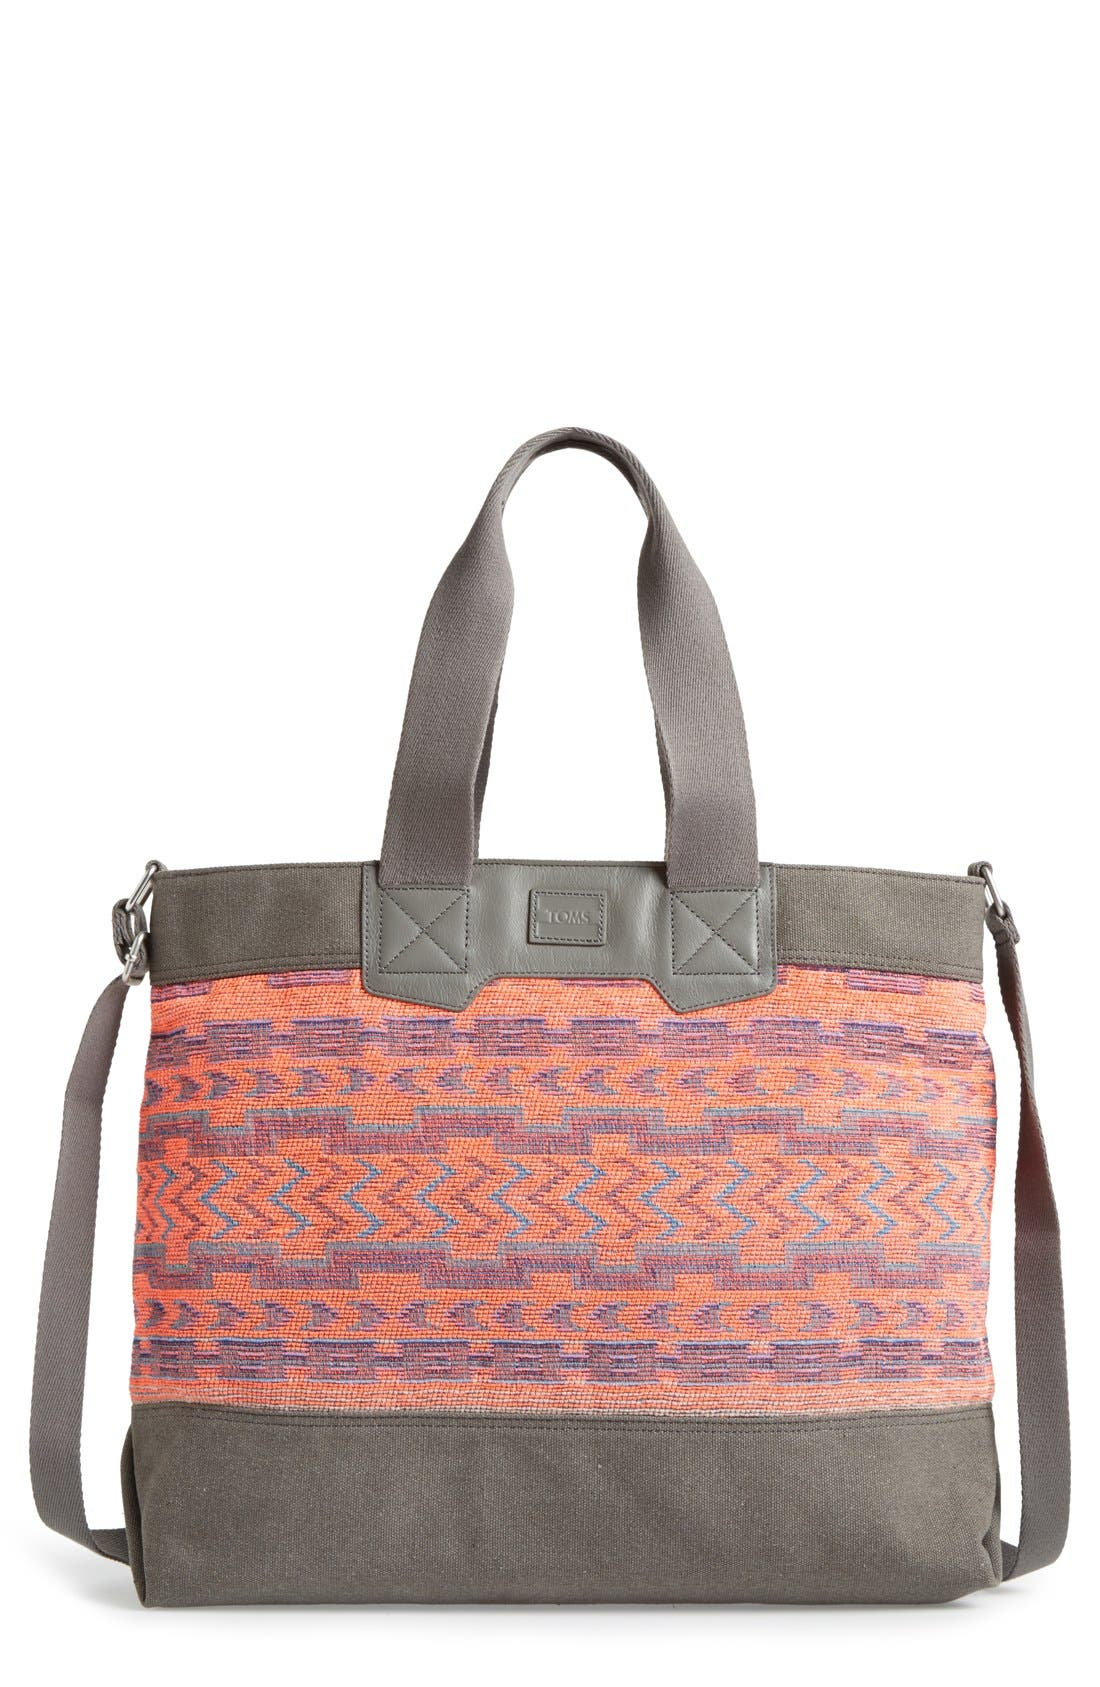 Alternate Image 1 Selected - TOMS 'Naturalist' Mixed Ikat Print Tote